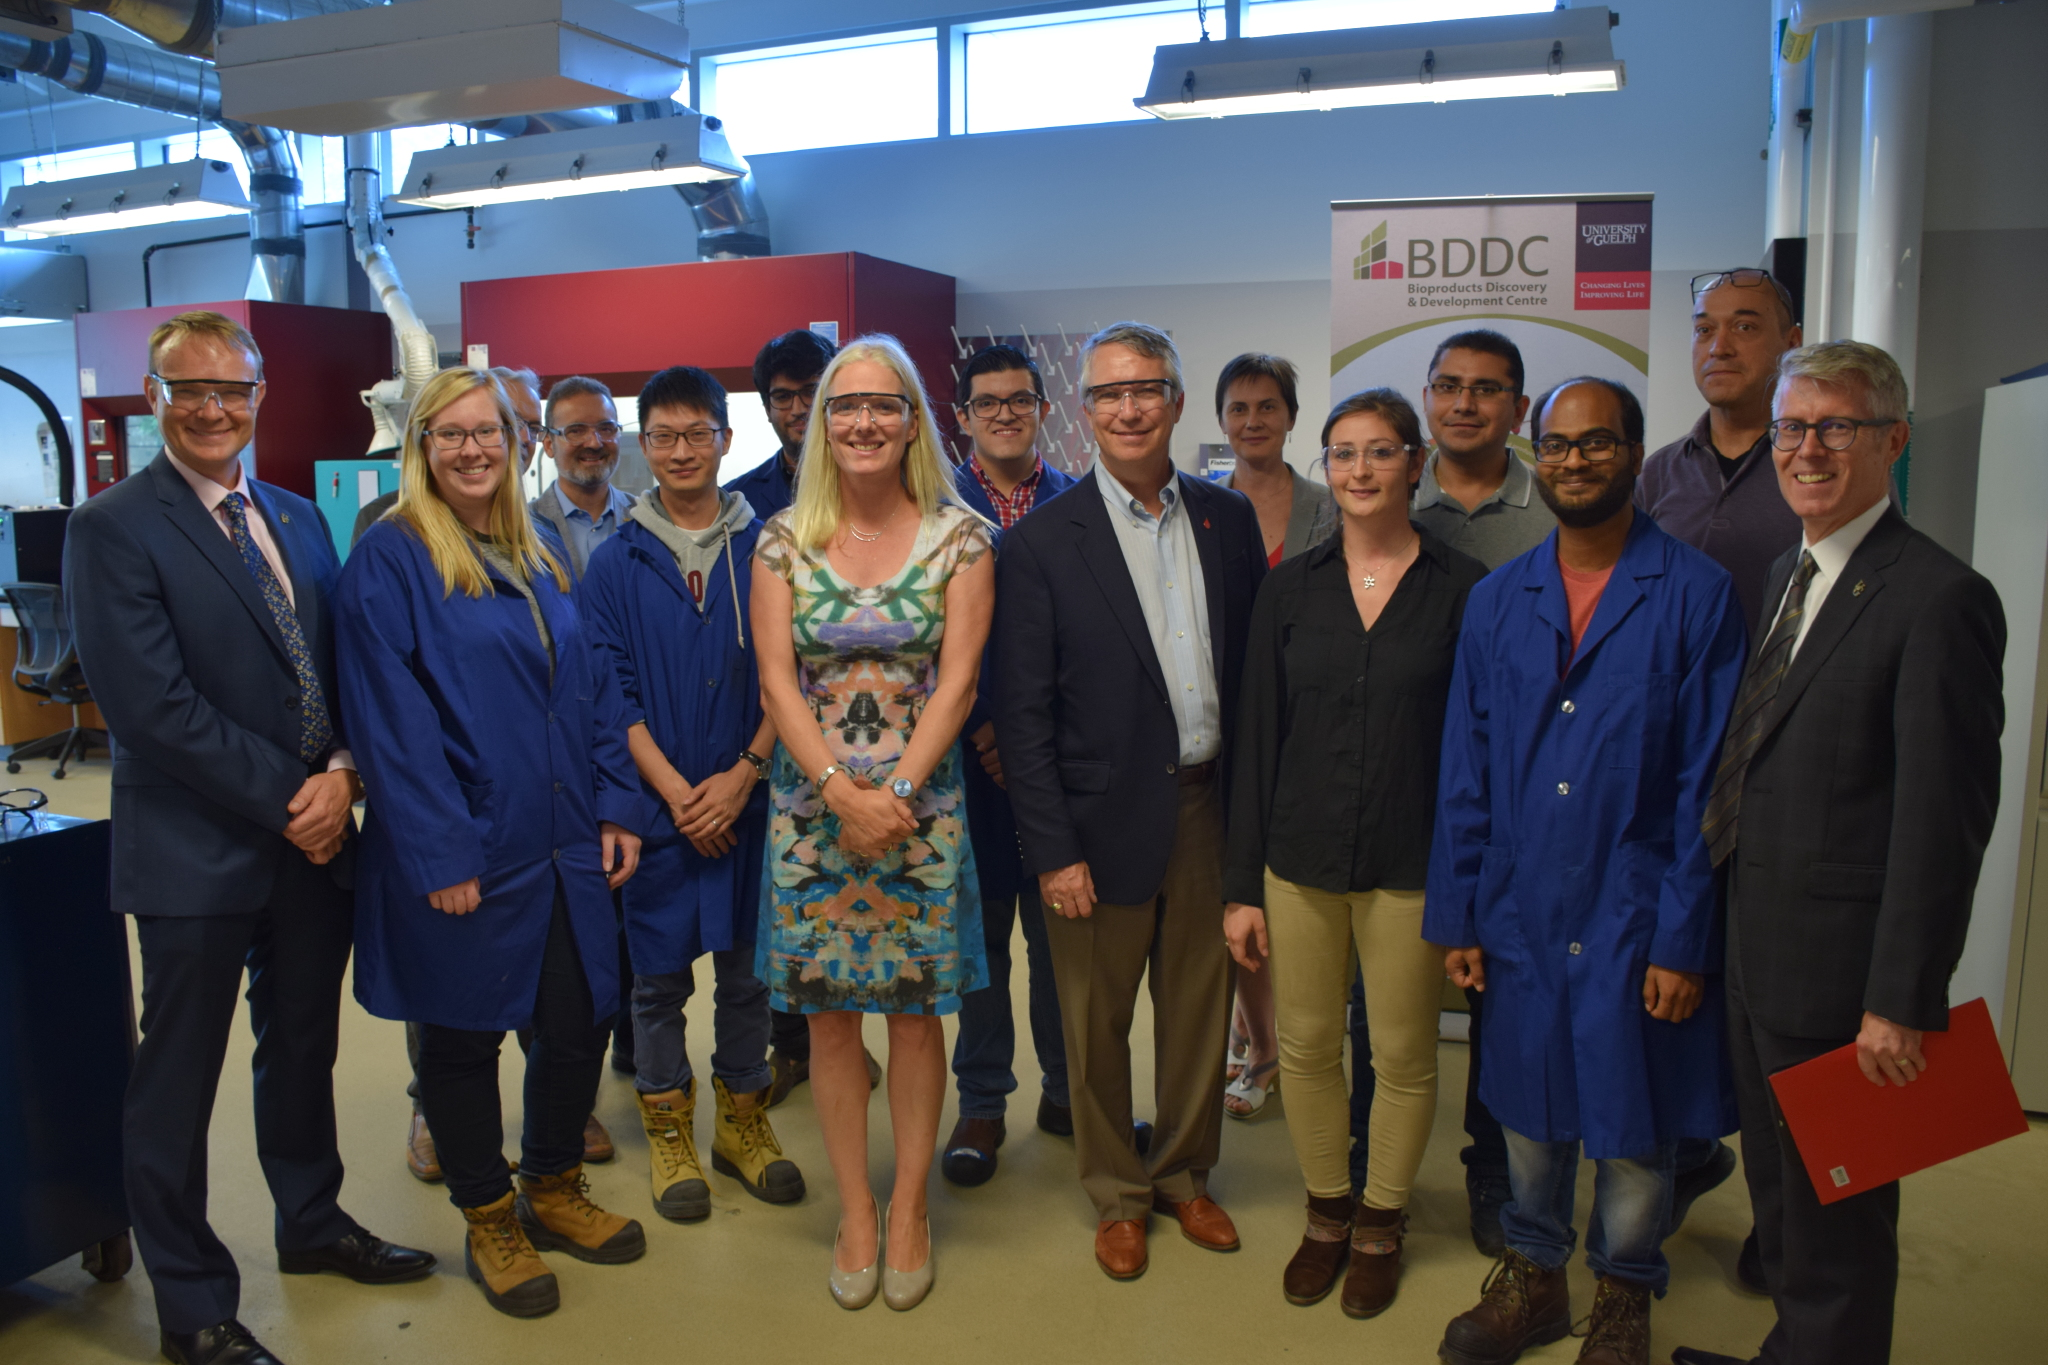 Group photo with the Honourable Catherine McKenna